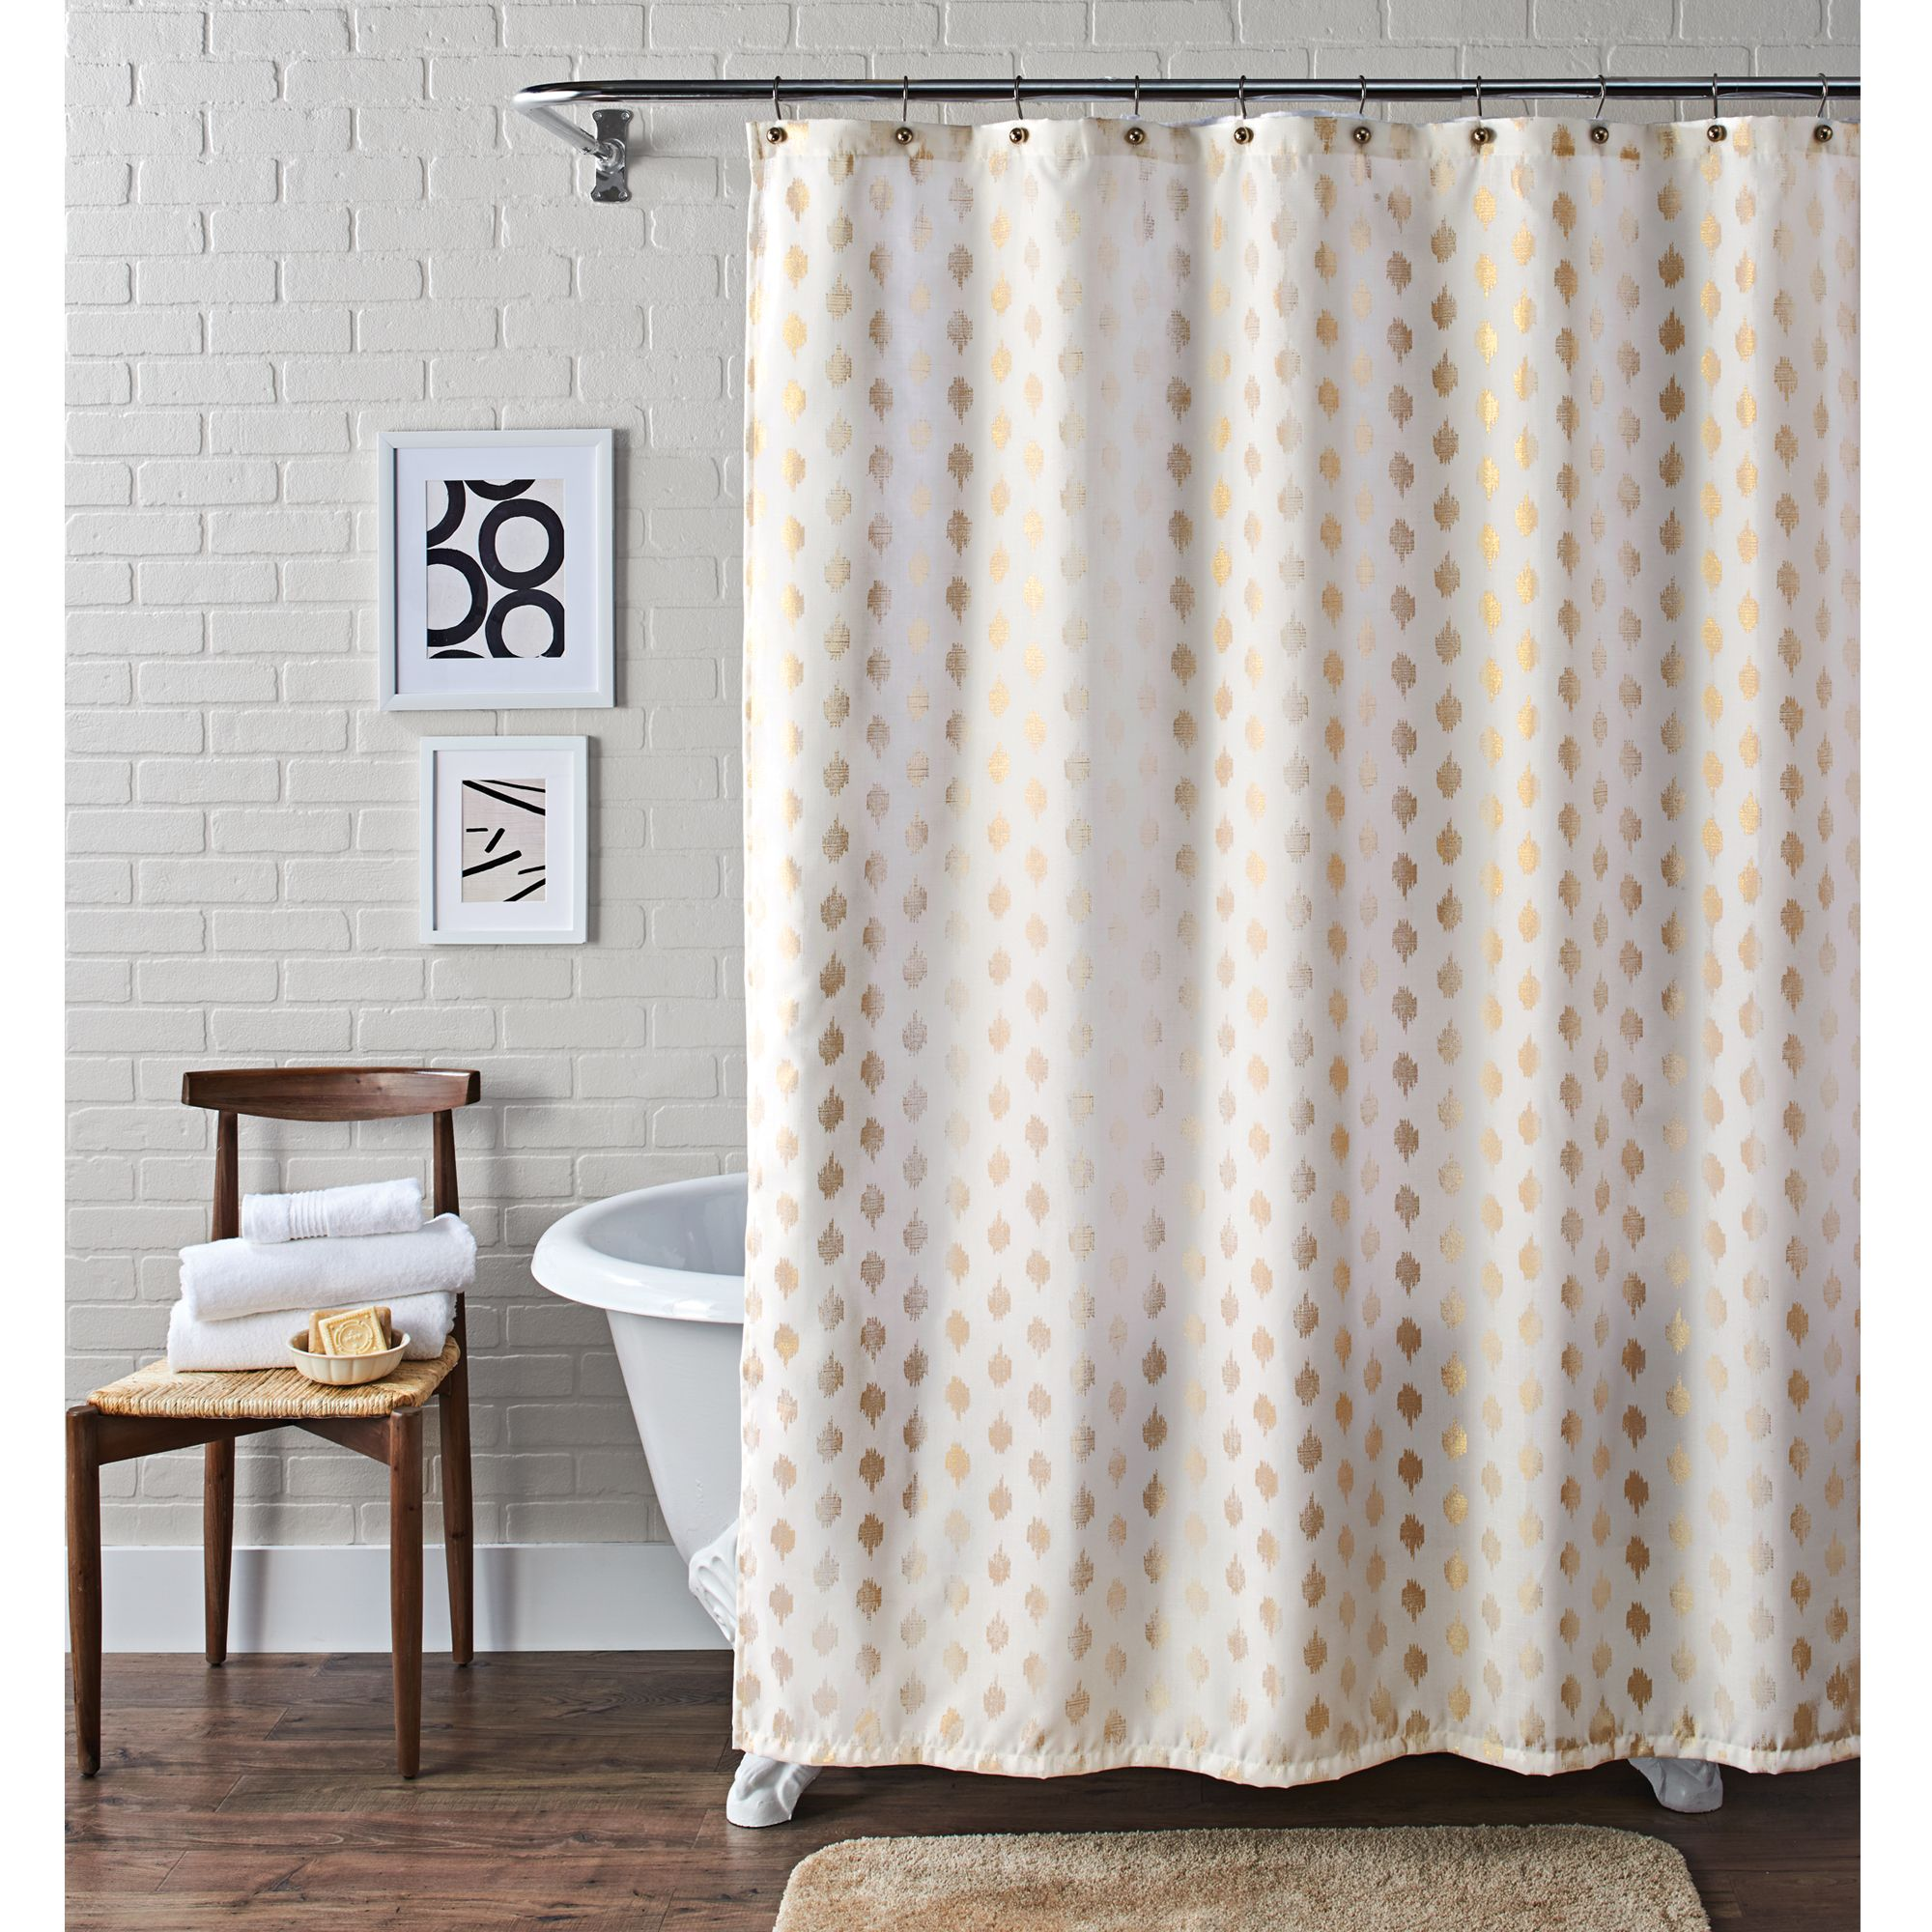 Home Fabric Shower Curtains Shower Curtains Walmart Bathroom Decor